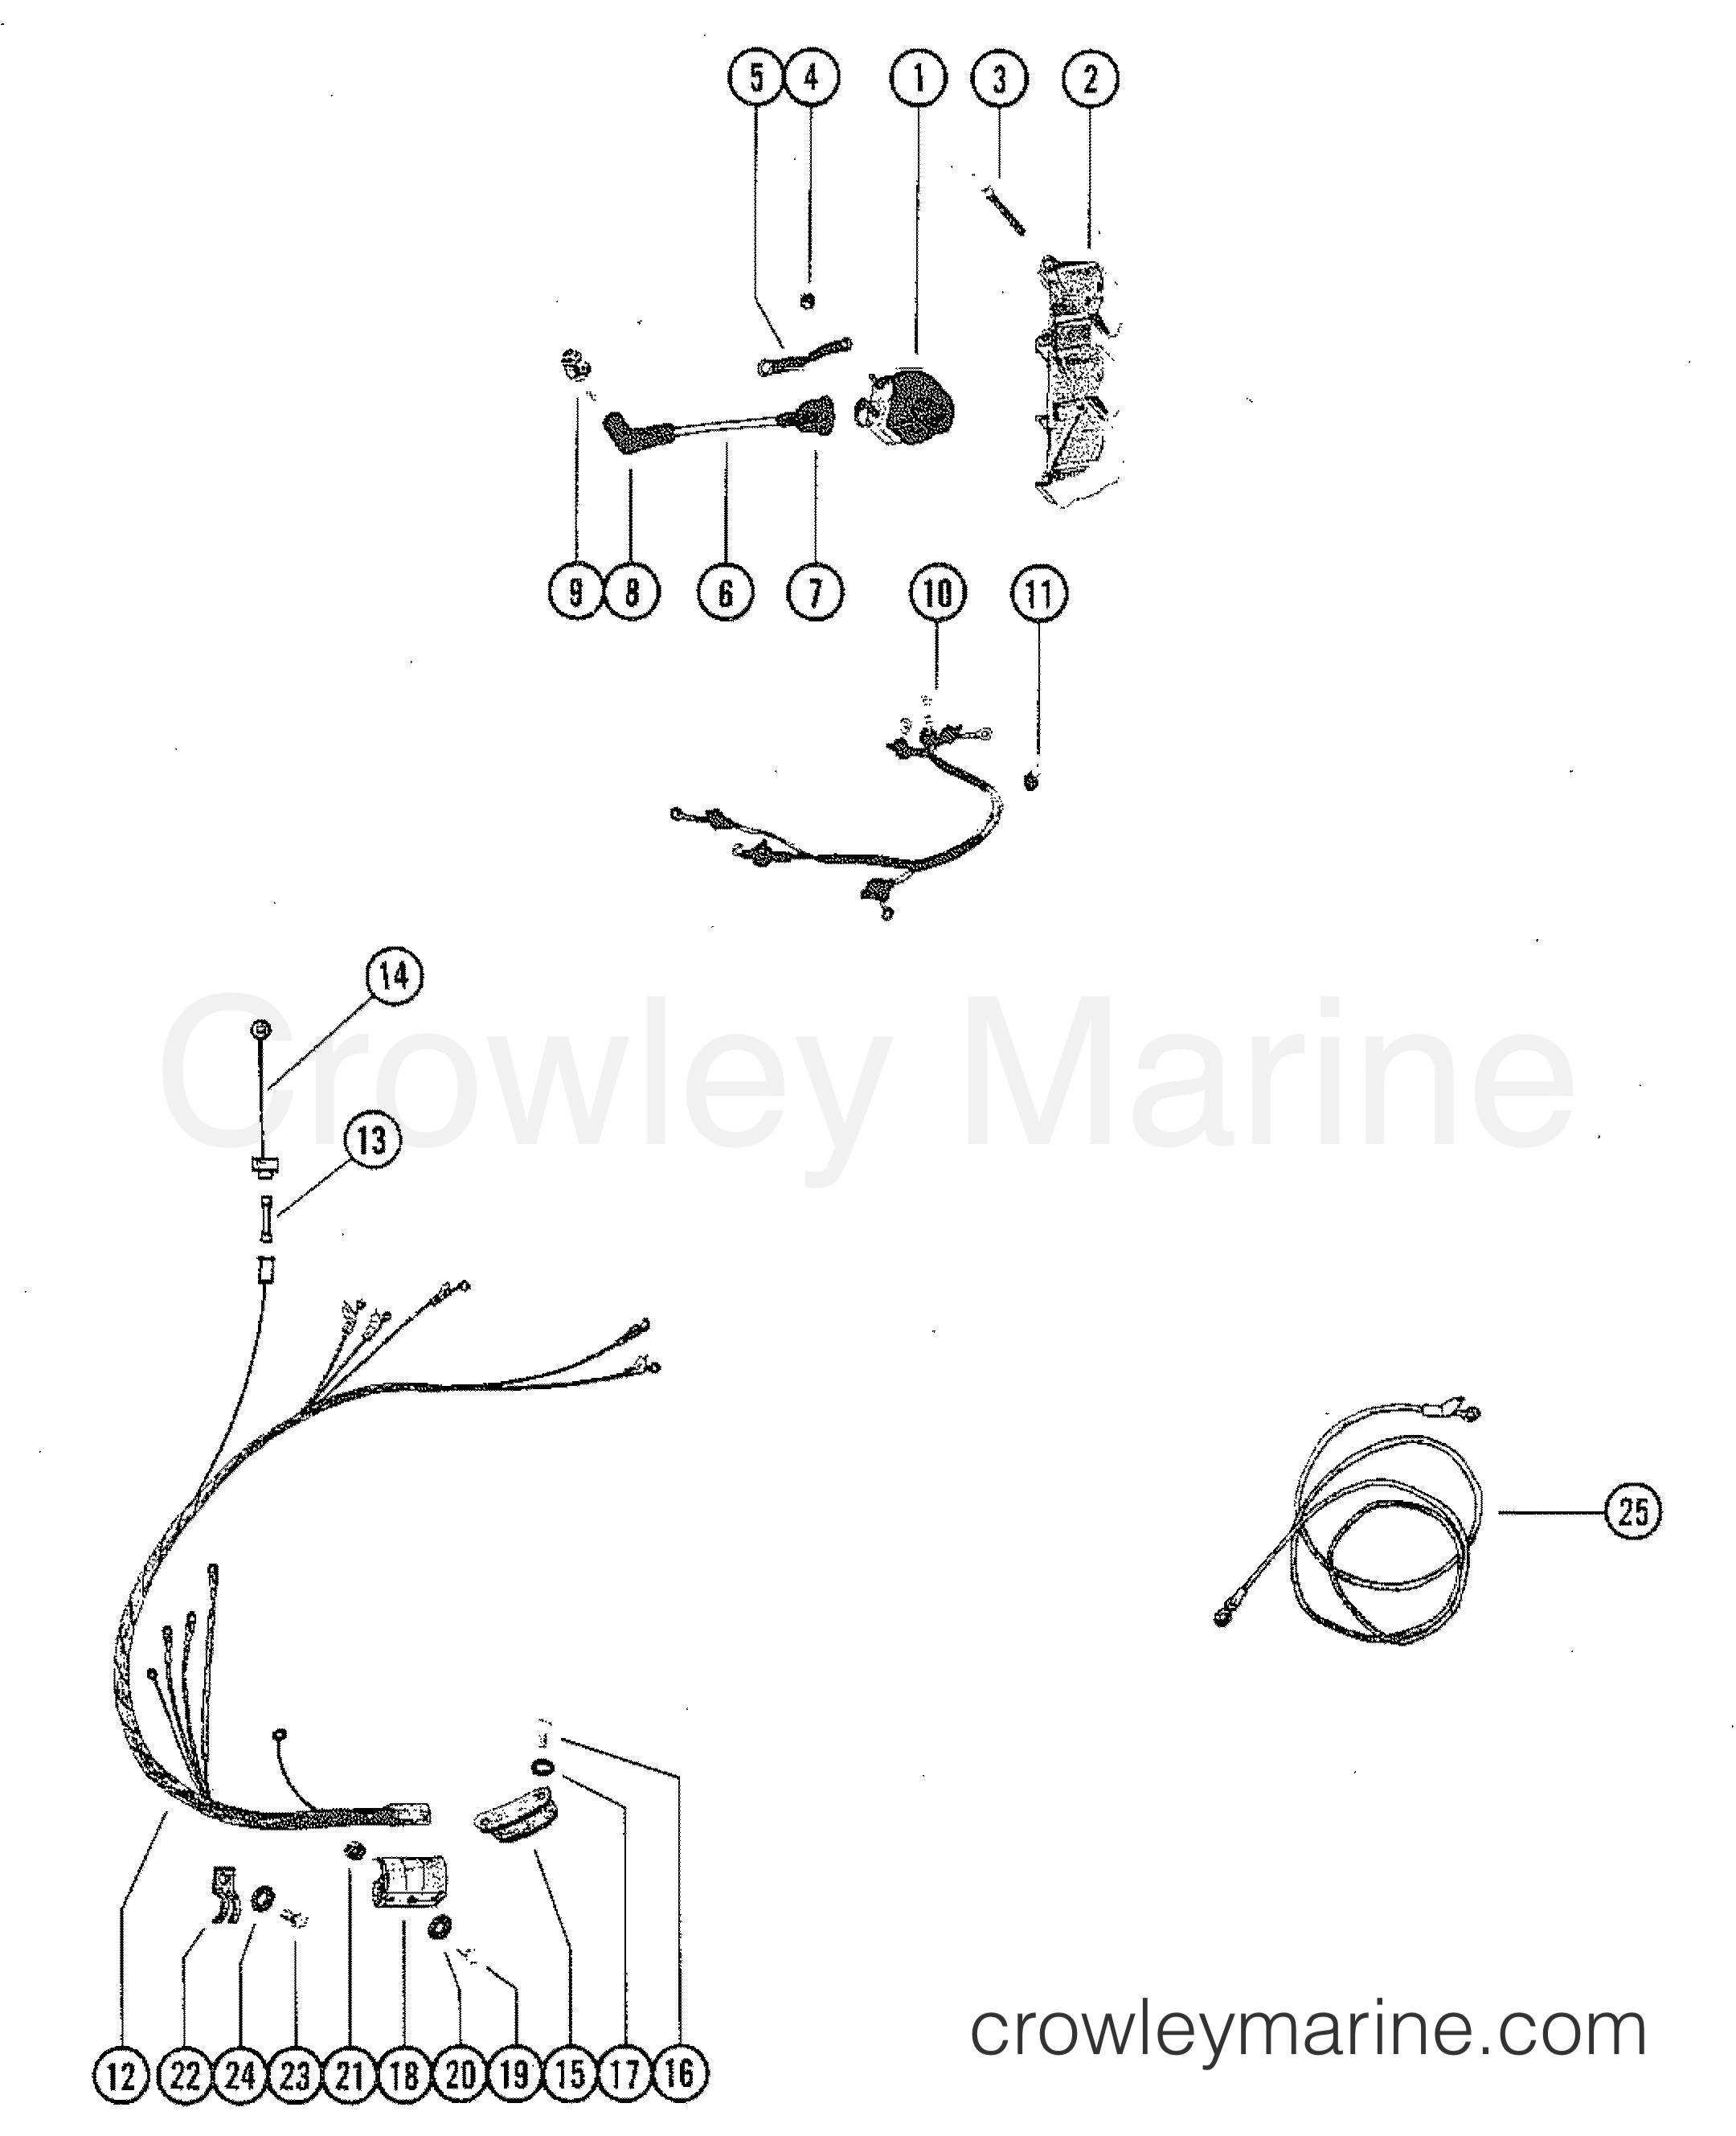 Wiring Harness And Ignition Coil 1980 Mercury Outboard 115 Elpt. 1980 Mercury Outboard 115 Elpt 1115620 Wiring Harness And Ignition Coil Section. Mercury. 1980 Mercury Outboard Wiring Diagram At Scoala.co